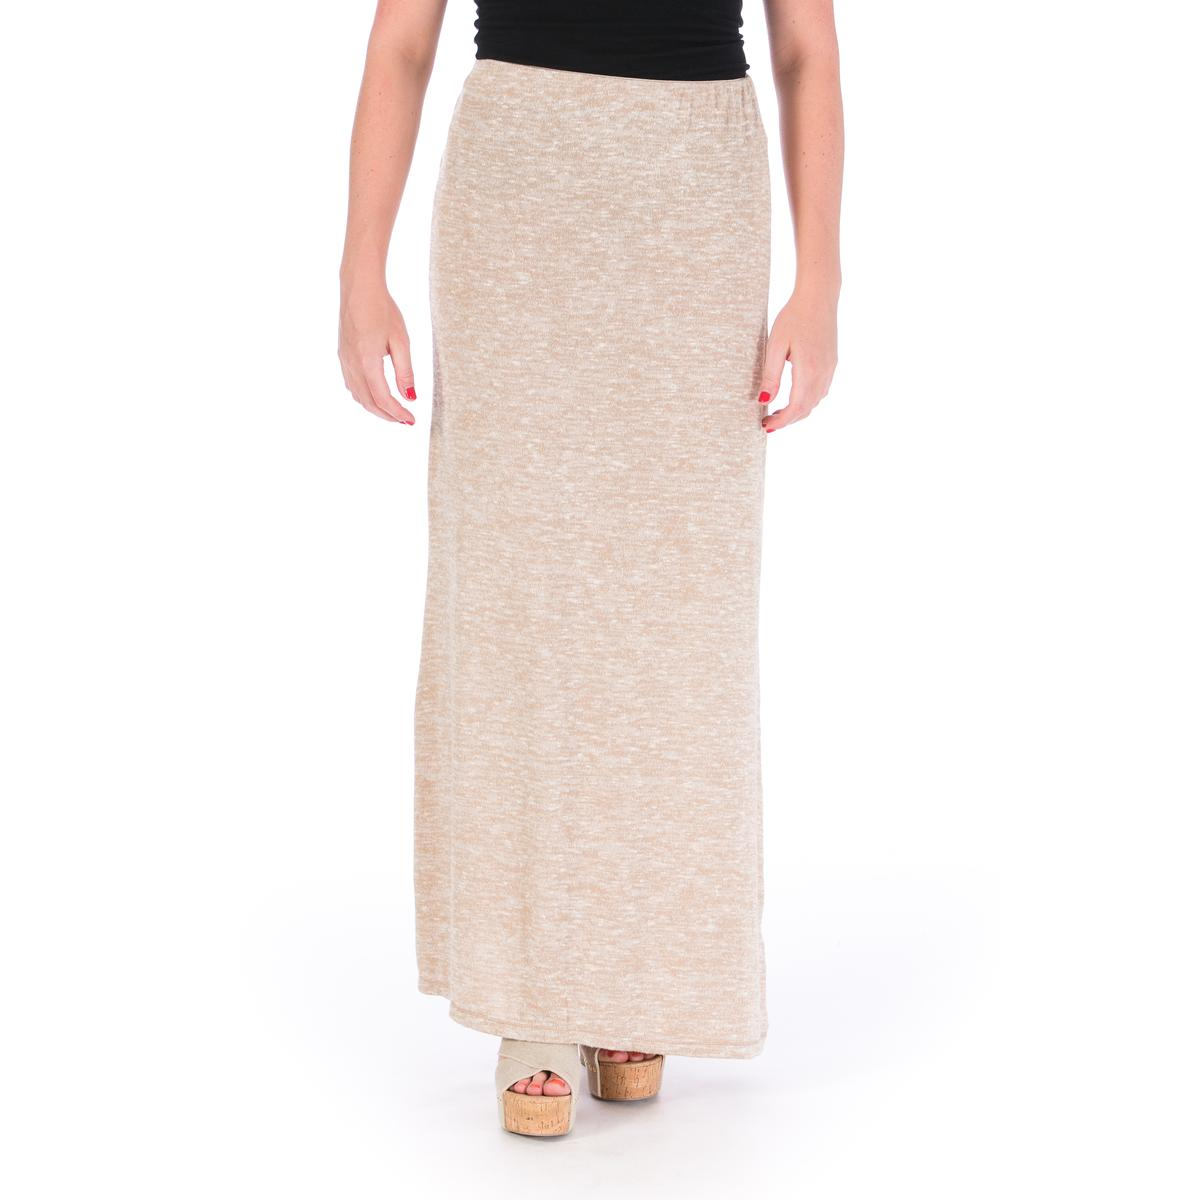 AGB Women's Petite Timeless Soft Knit Maxi Skirt. by AGB. $ $ 34 00 Prime. FREE Shipping on eligible orders. Some sizes/colors are Prime eligible. out of 5 stars MBJ Womens Lightweight Floor Length Maxi Skirt - Made in USA. by Made By Johnny. $ - $ $ 9 $ 17 95 Prime.